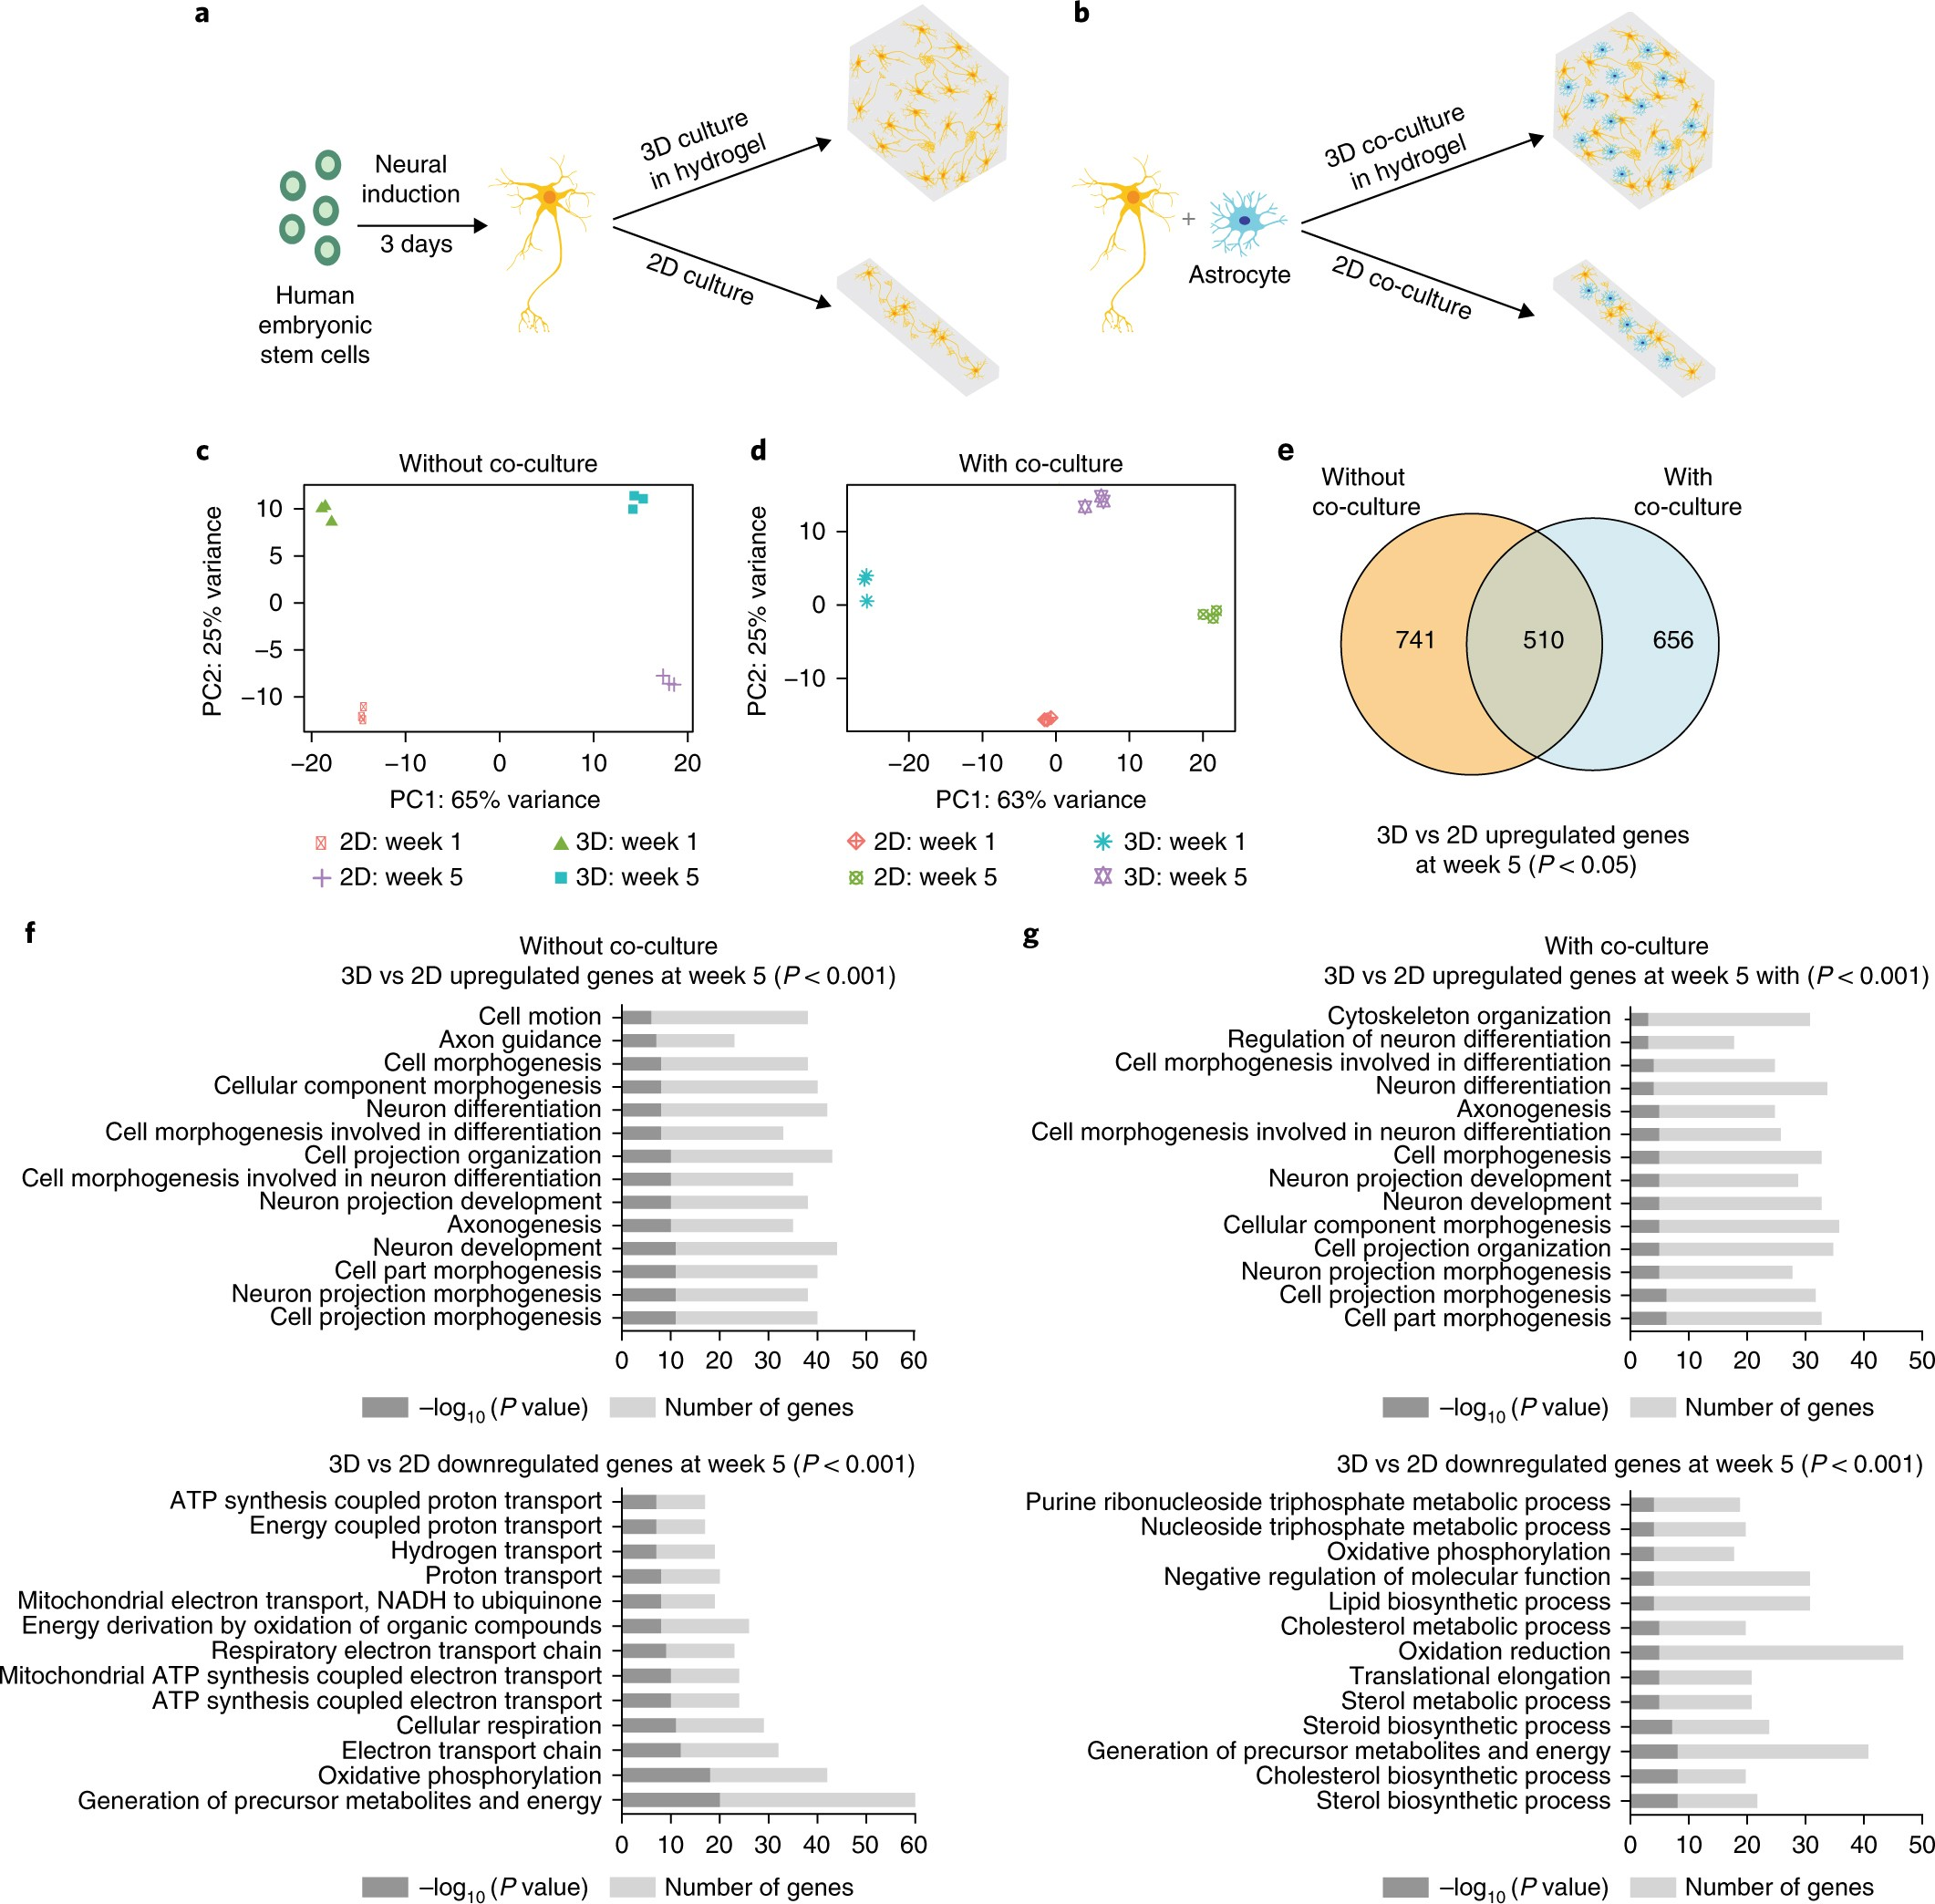 Effects of 3D culturing conditions on the transcriptomic profile of